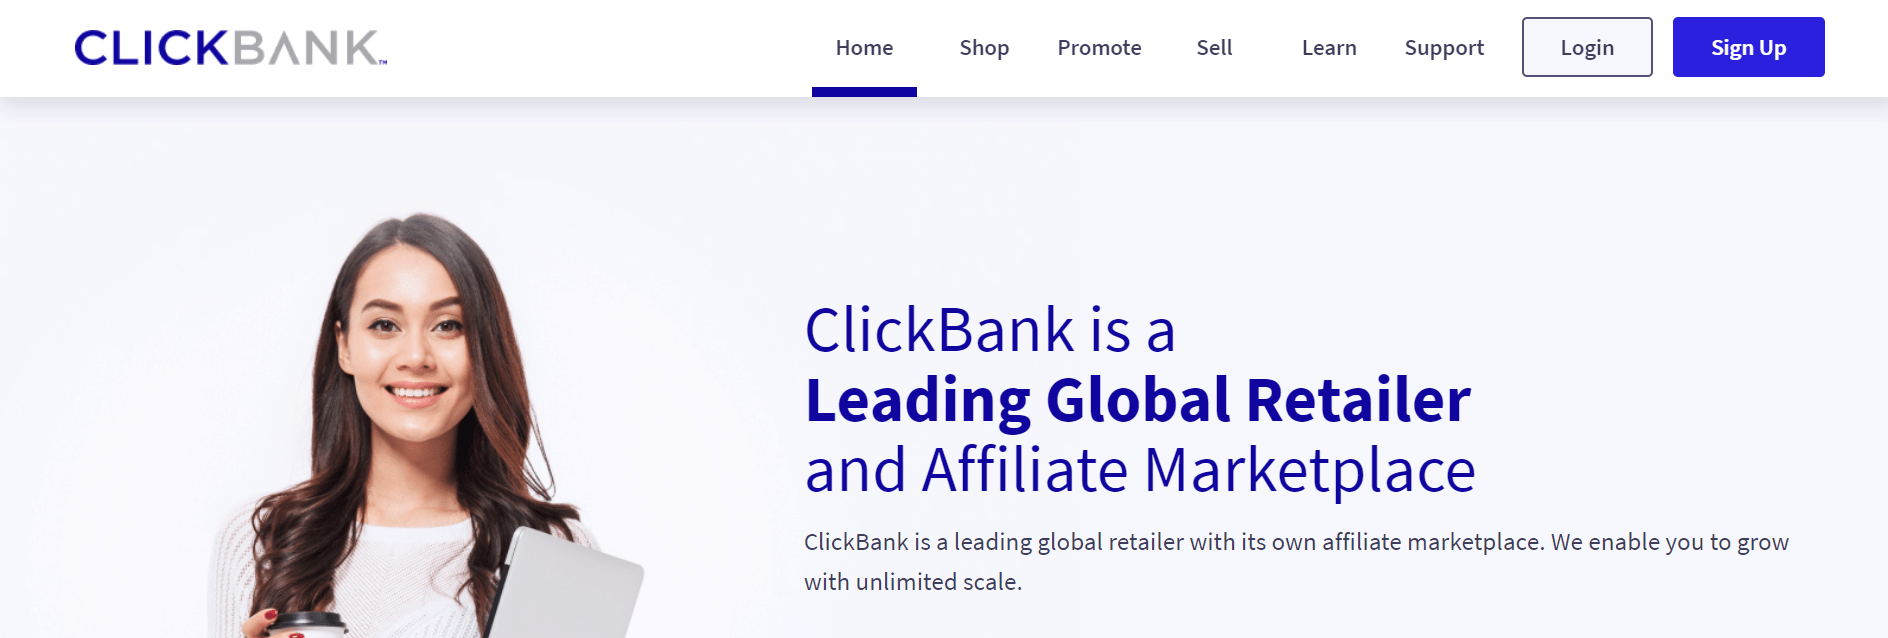 Clickbank affilaite offers